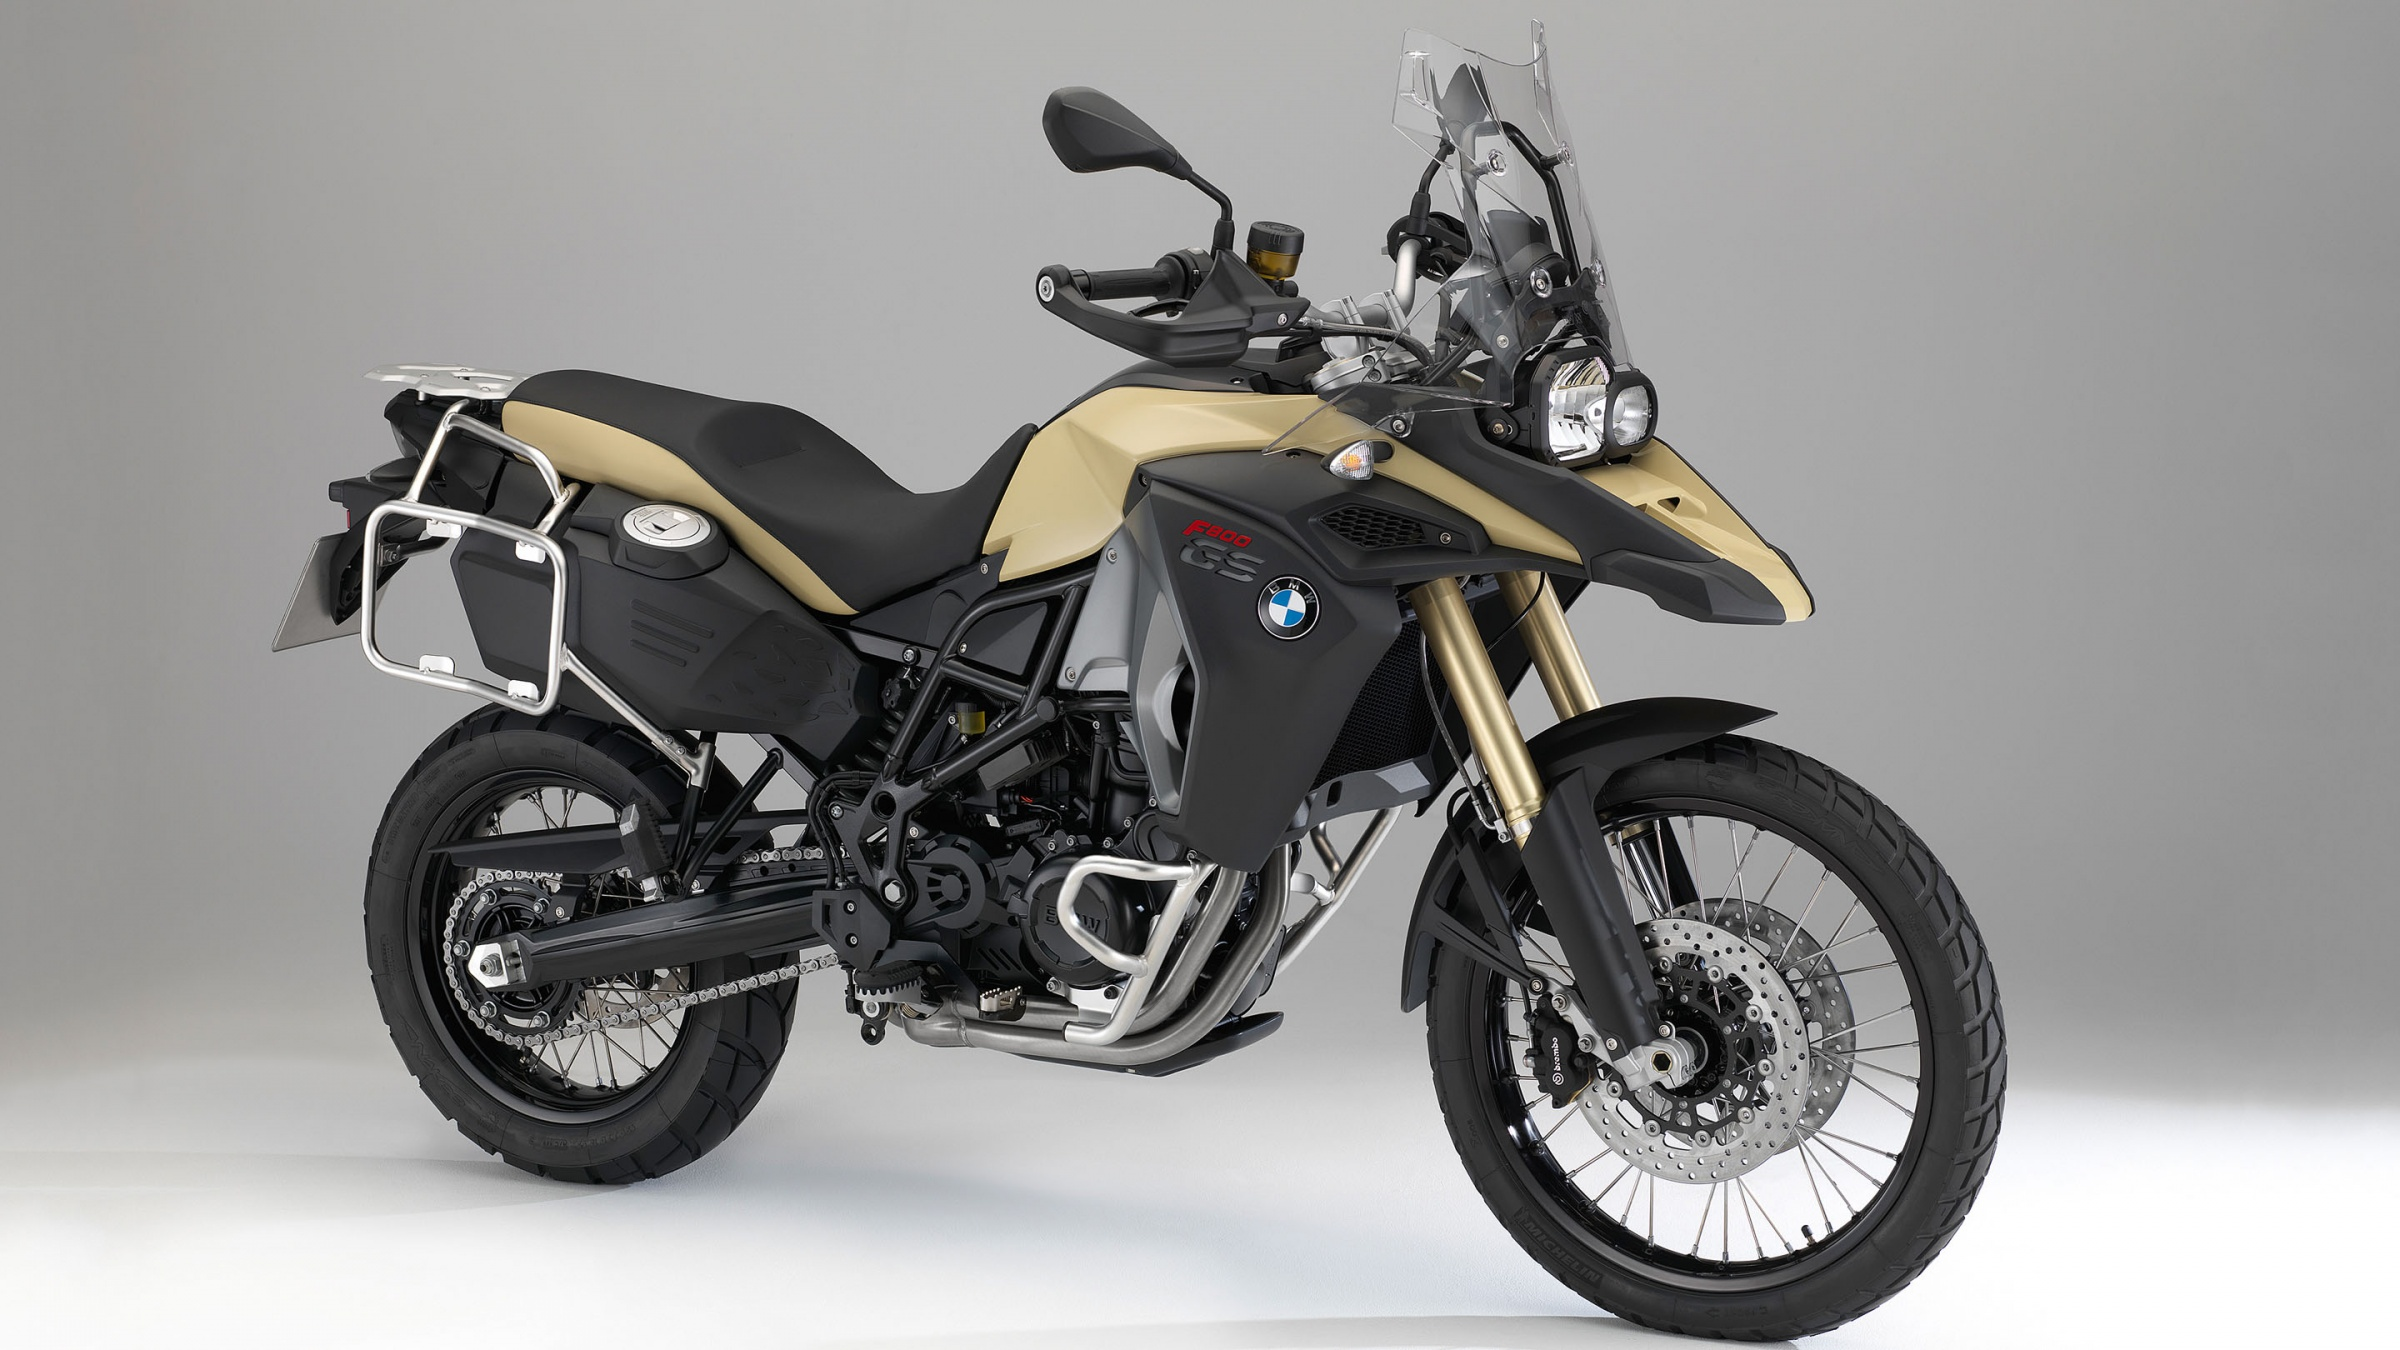 bmw f 800 gs adventure 2016 wallpapers 2400x1350 659225. Black Bedroom Furniture Sets. Home Design Ideas